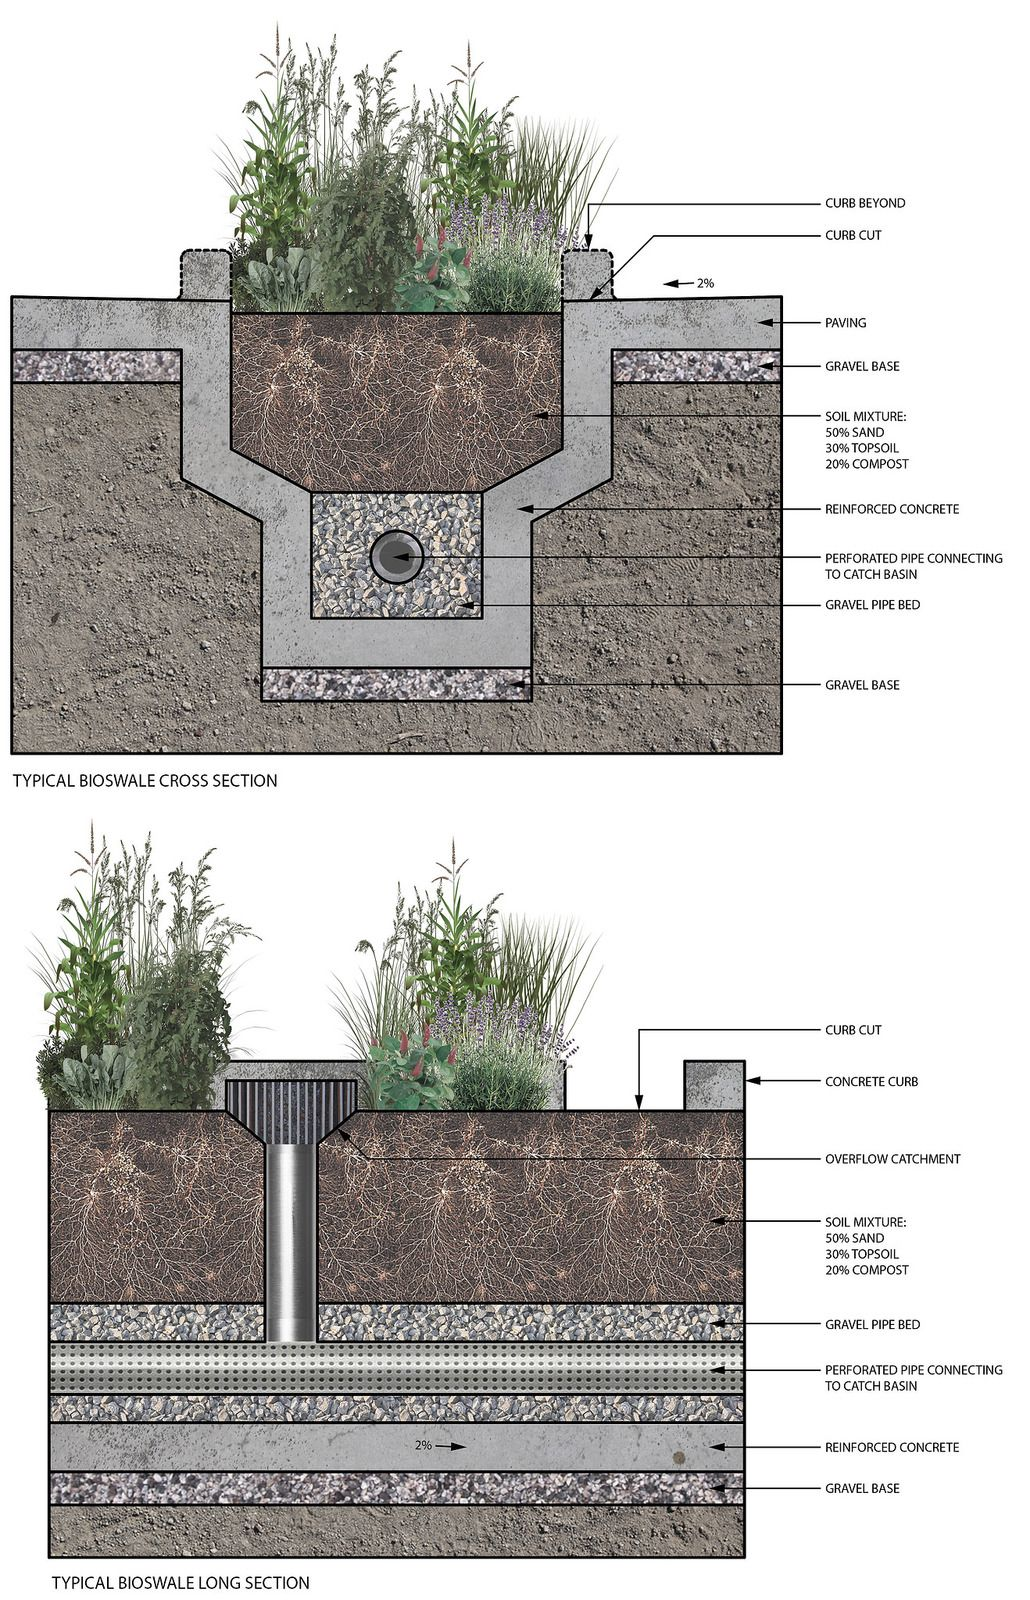 Integrated Urban Bioswale Components